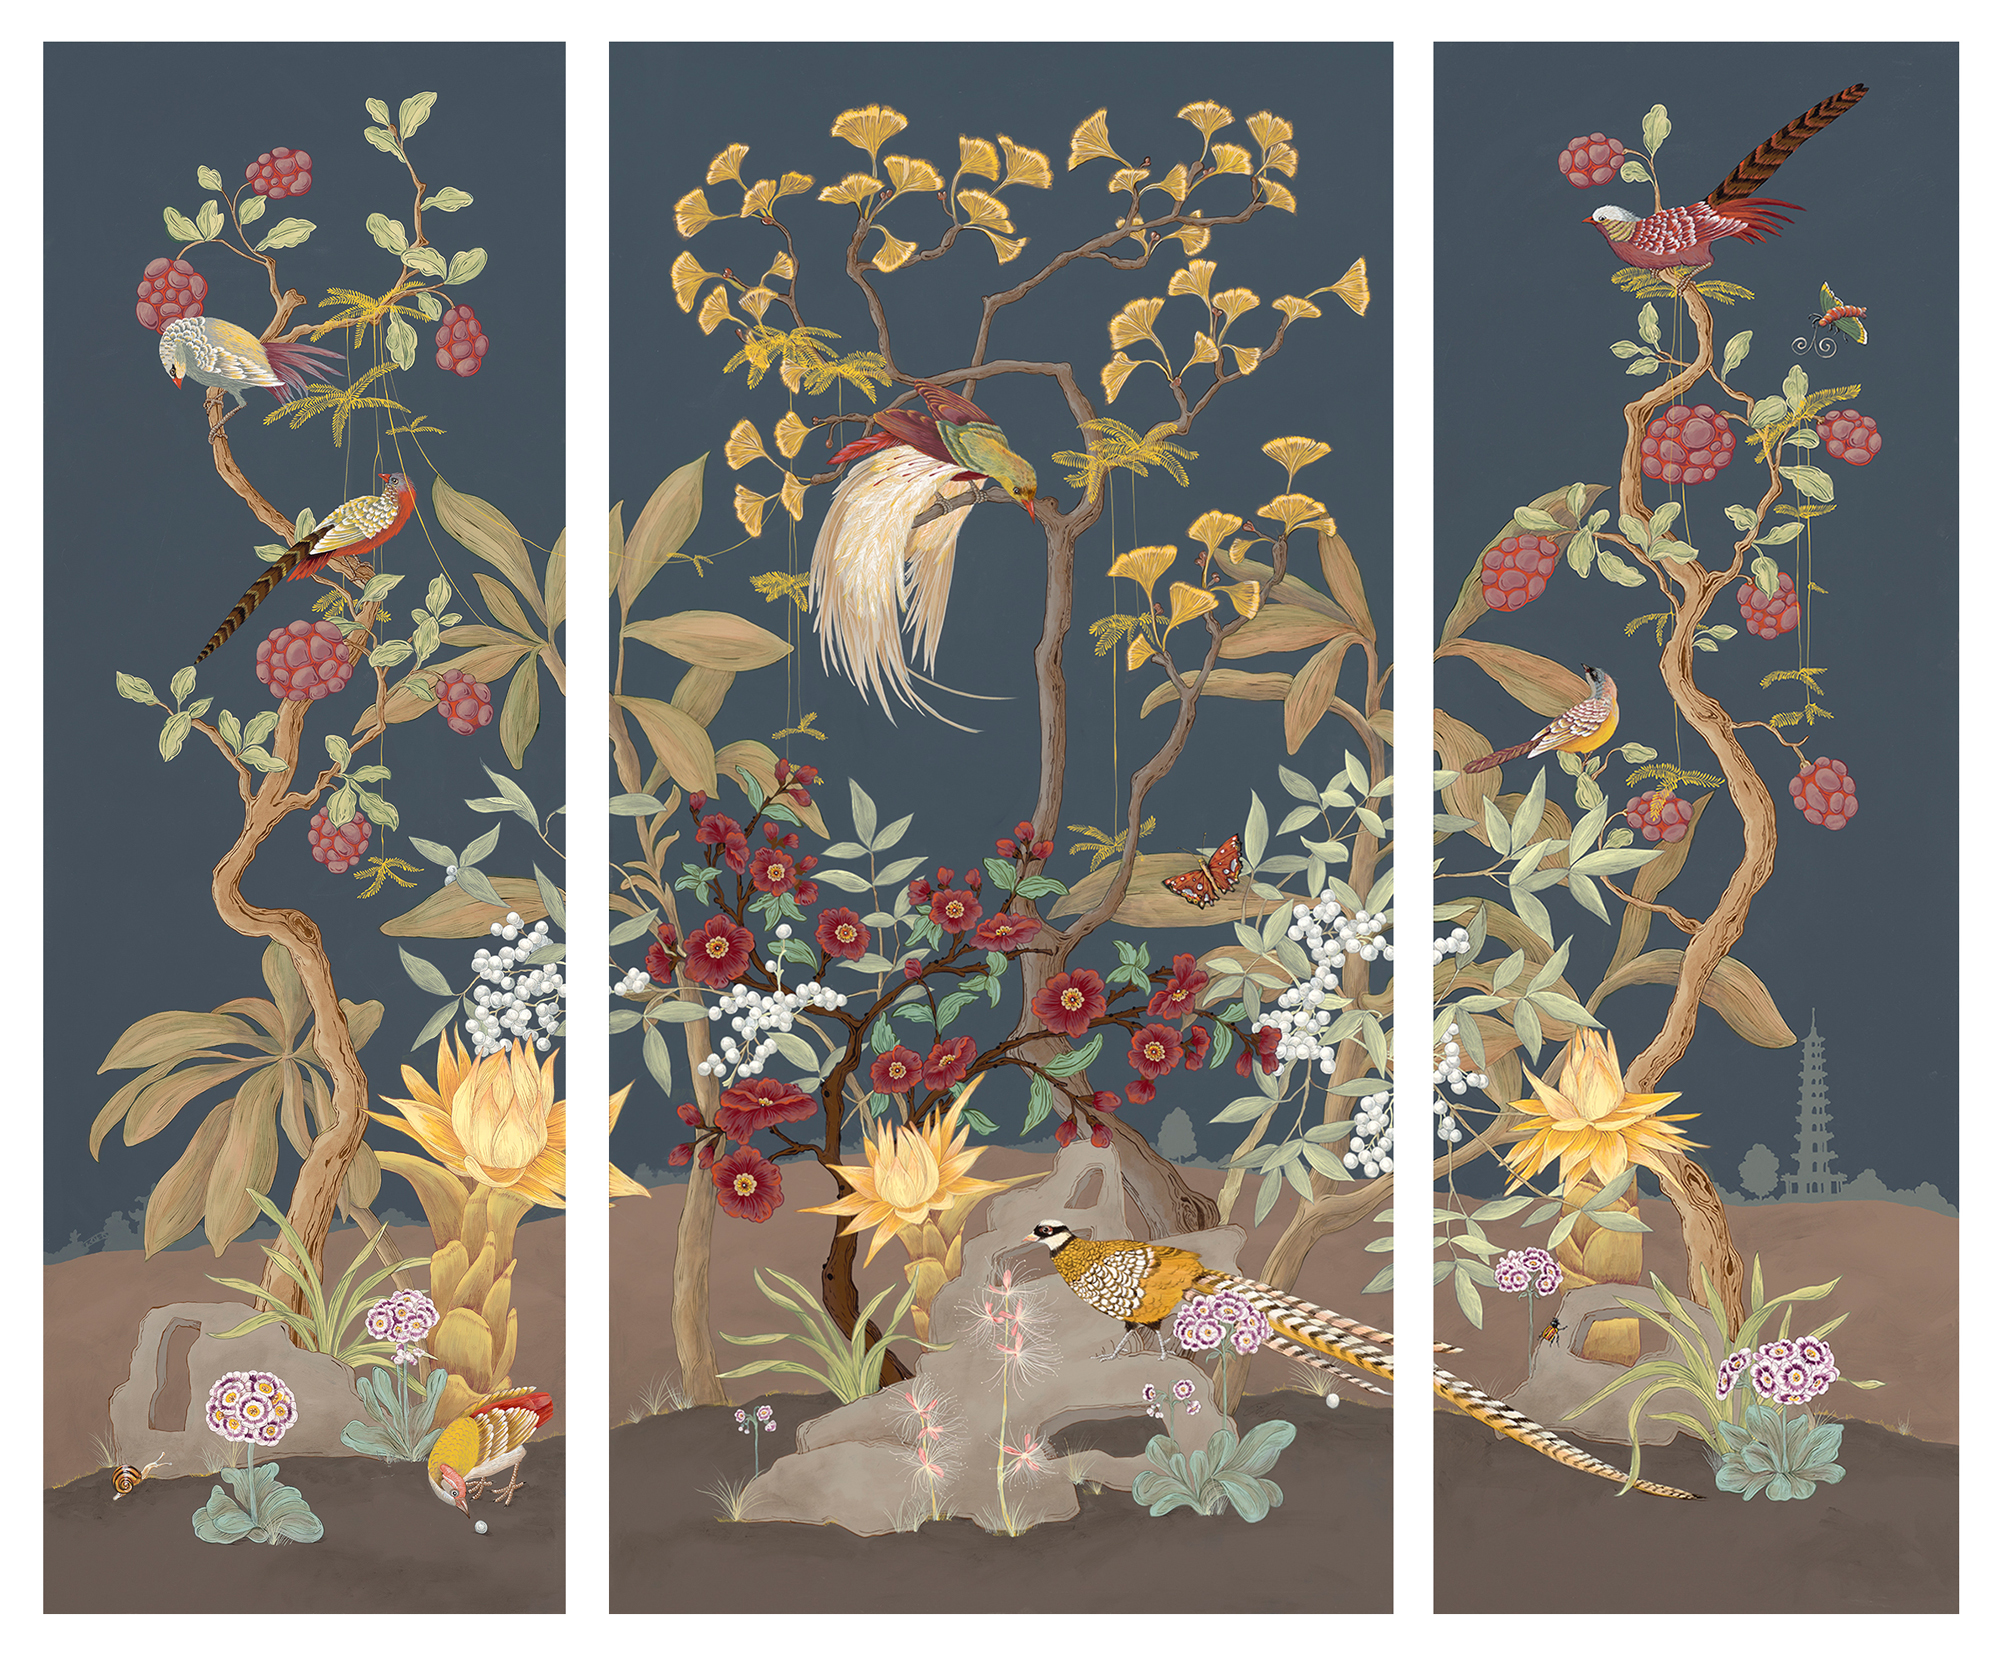 """Pheasants and Forest"" is a Modern style Chinoiserie triptych measuring 72"" high. The original is available in our ""shop"" and limited edition prints are offered to the trade via <a href='http://www.zoebioscreative.com/newest-edition/' target='_blank'>Zoe Bios Creative</a>."